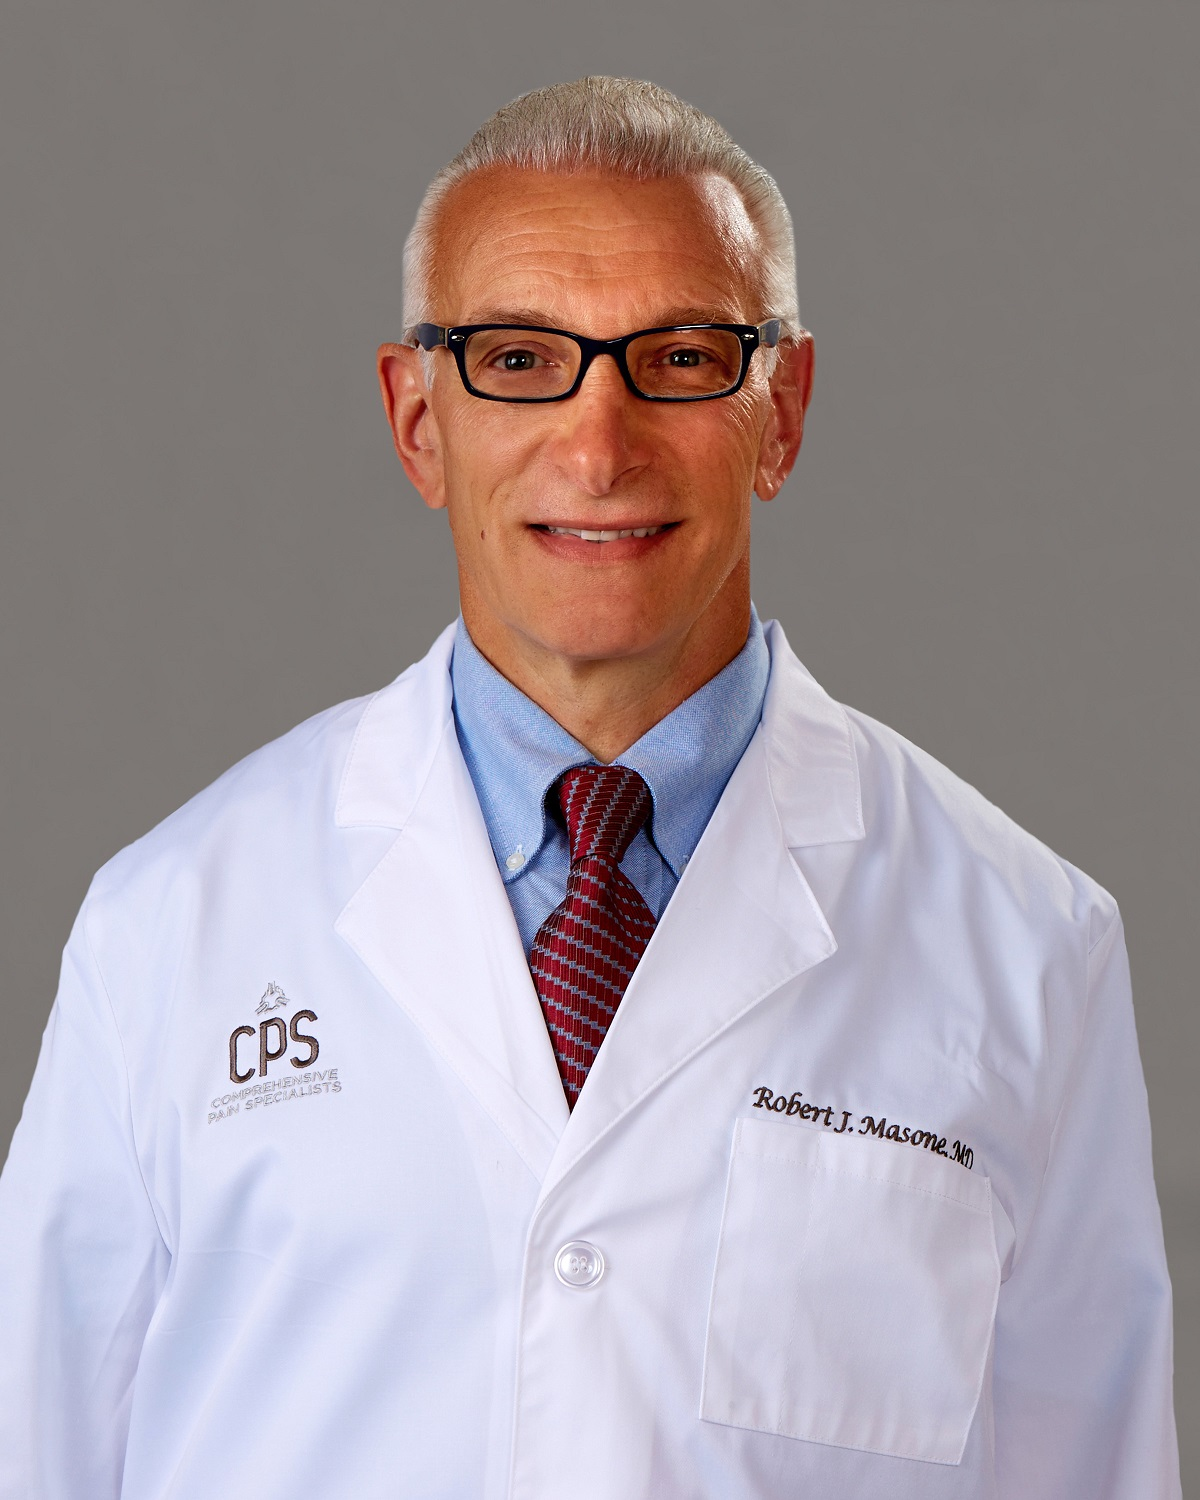 Robert J Masone, MD